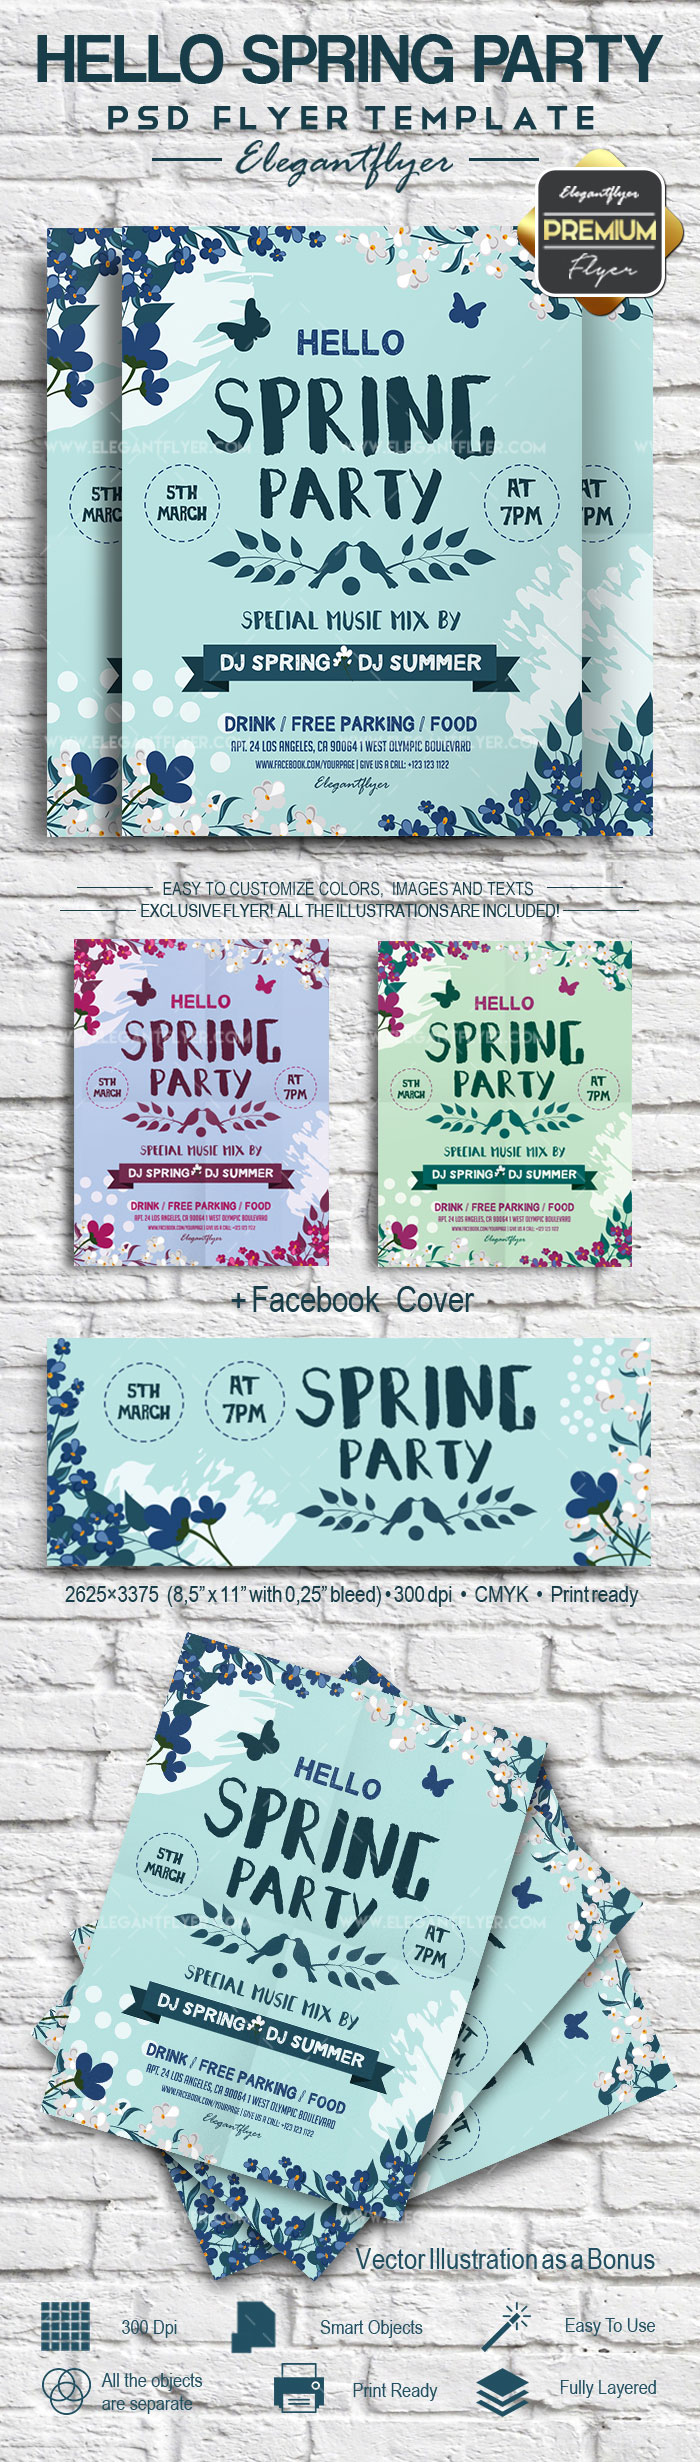 Spring Party Invitation